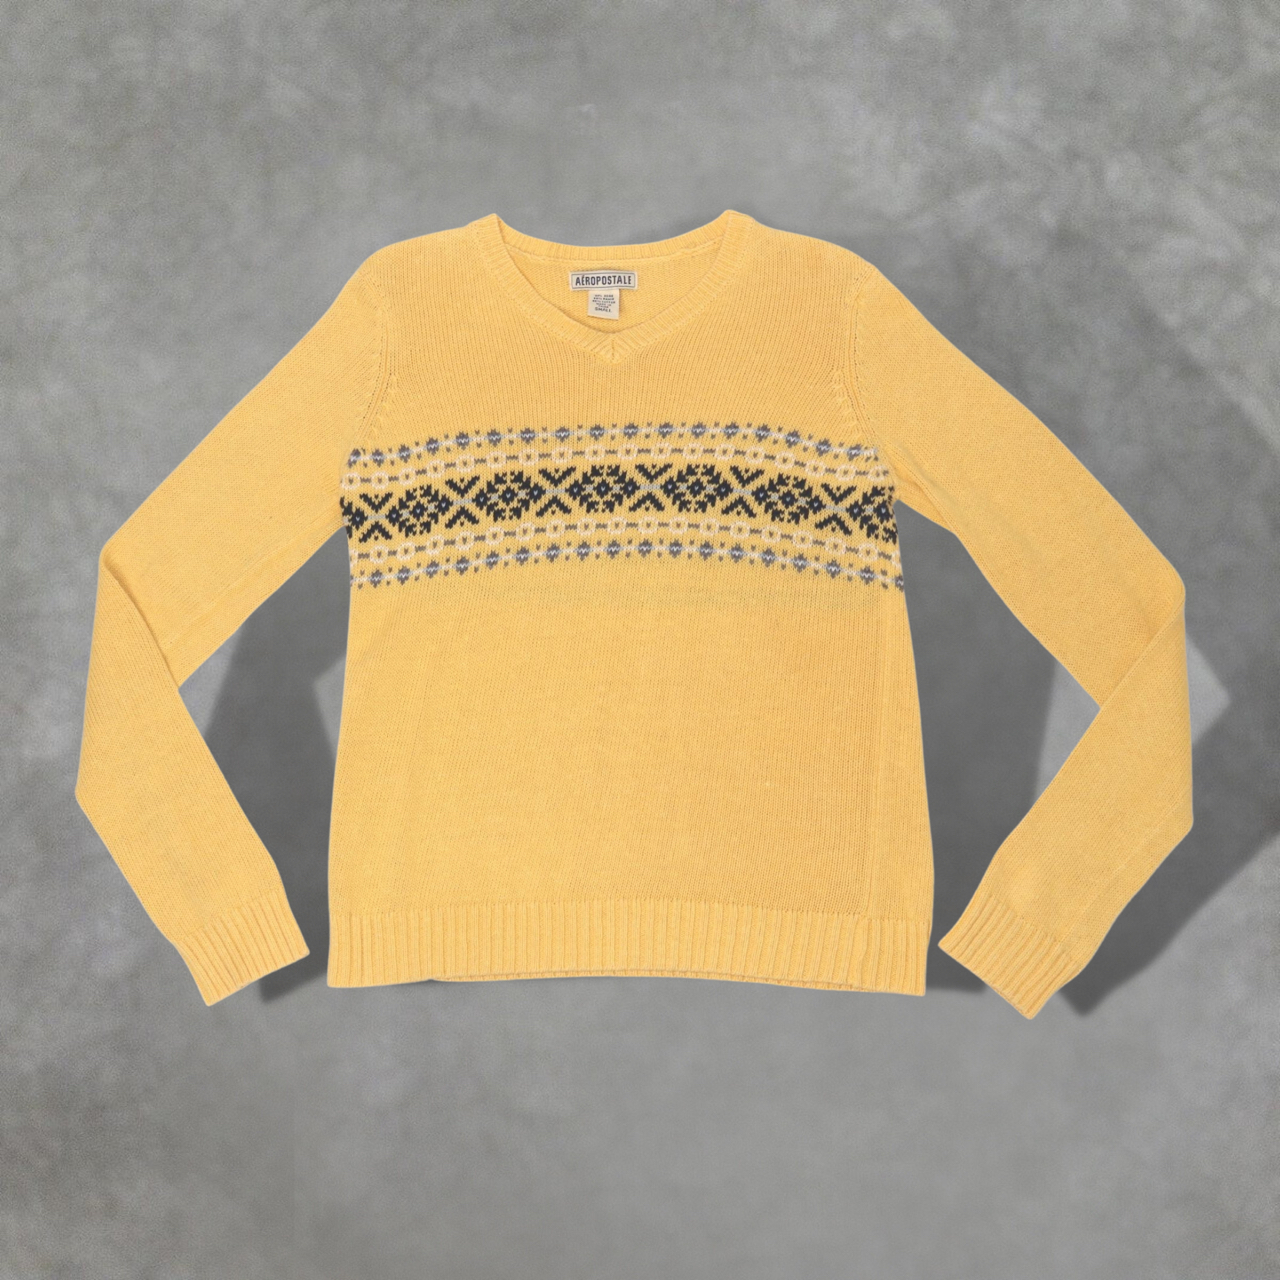 Product Image 1 - The Girls on Top Sweater